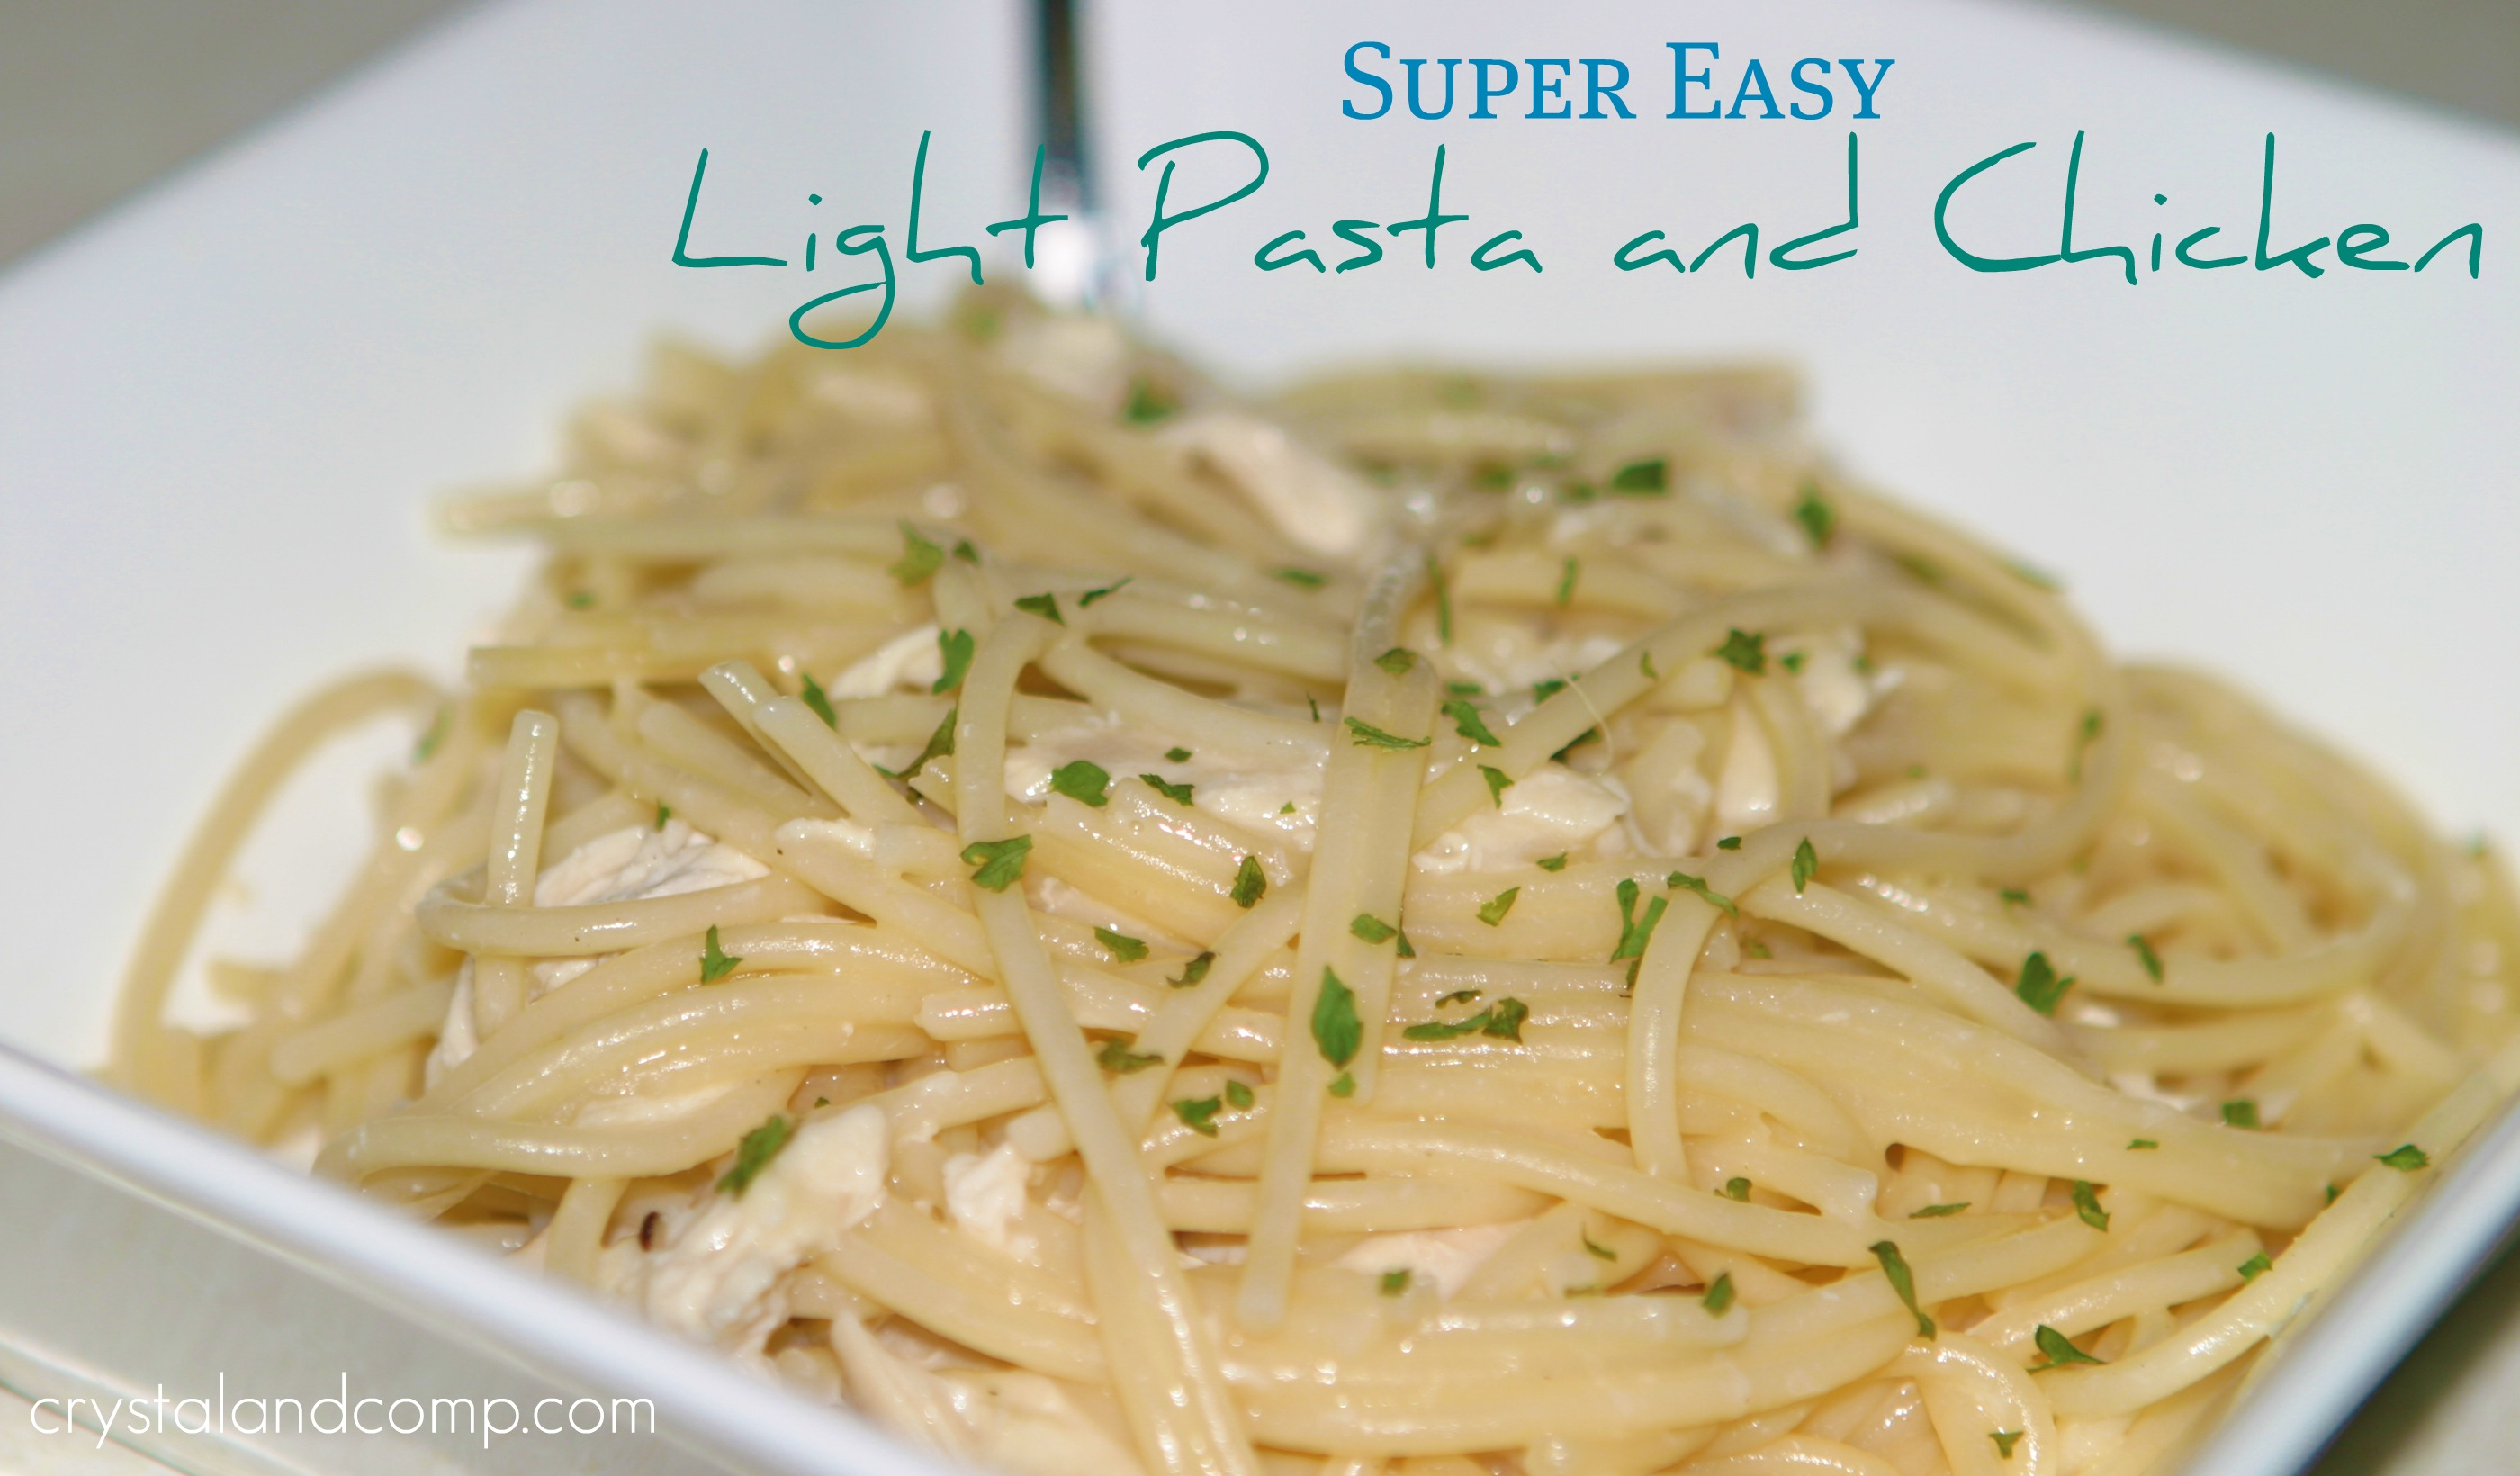 Light chicken and pasta dinner super easy crystalandcomp need forumfinder Images